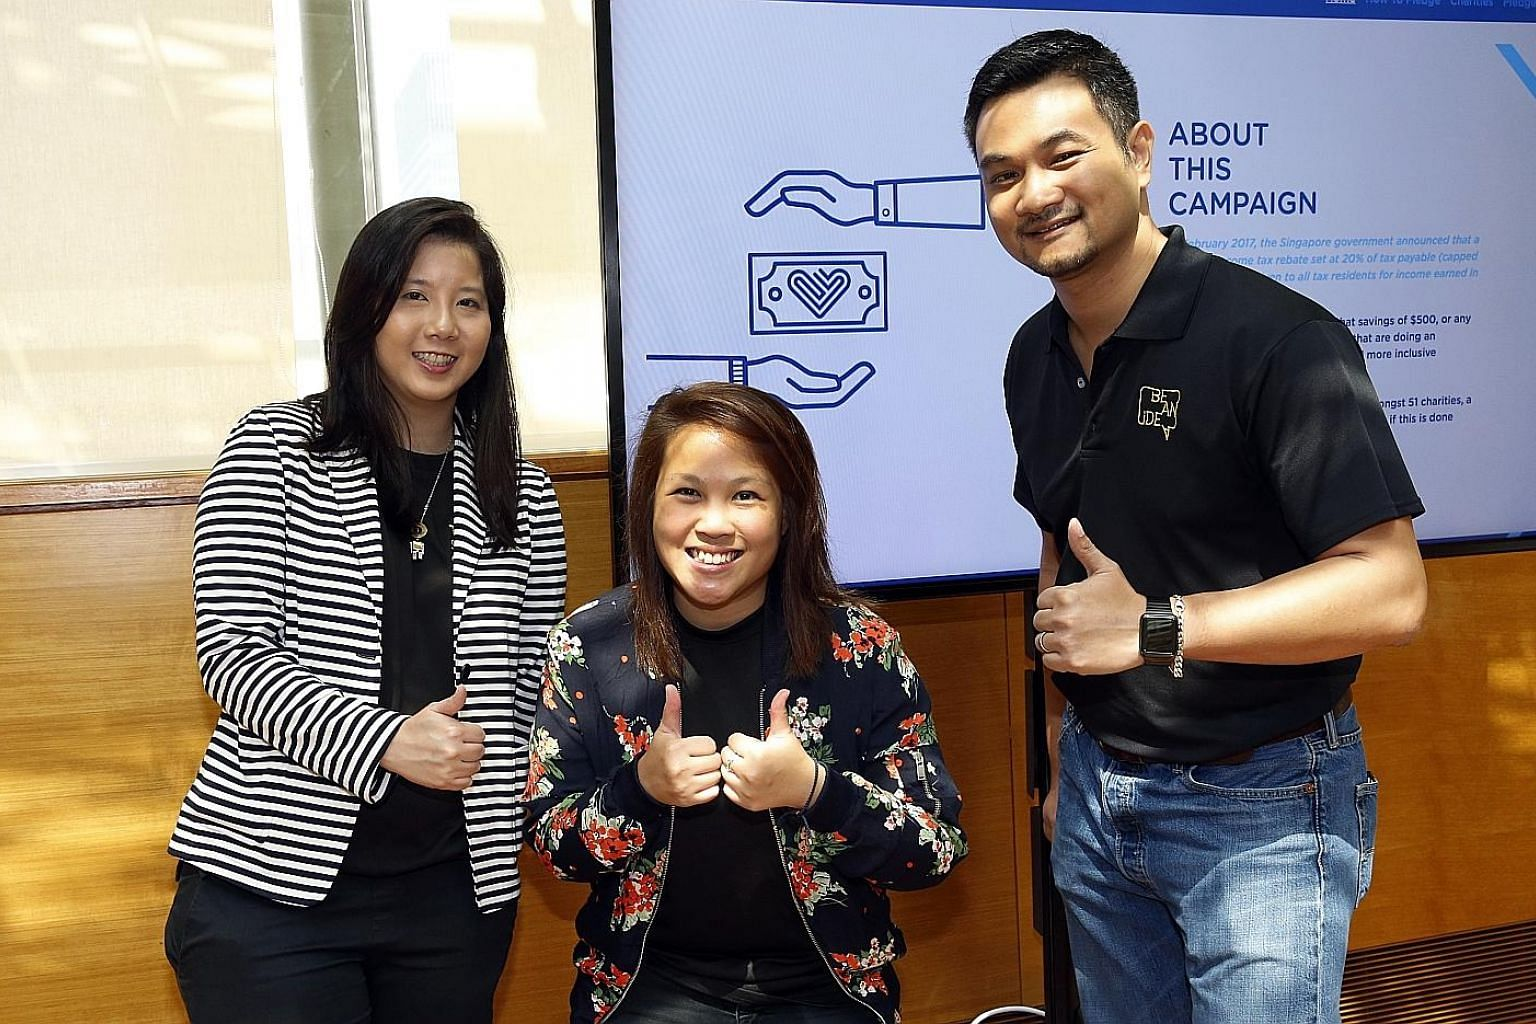 The Pledge It Forward initiative was started by (from far left) Ms Rebekah Lin, Ms Cheryl Chong and Mr Nadim van der Ros. Donations will benefit 51 charities that are members of the National Council of Social Service and hold an Institution of a Publ